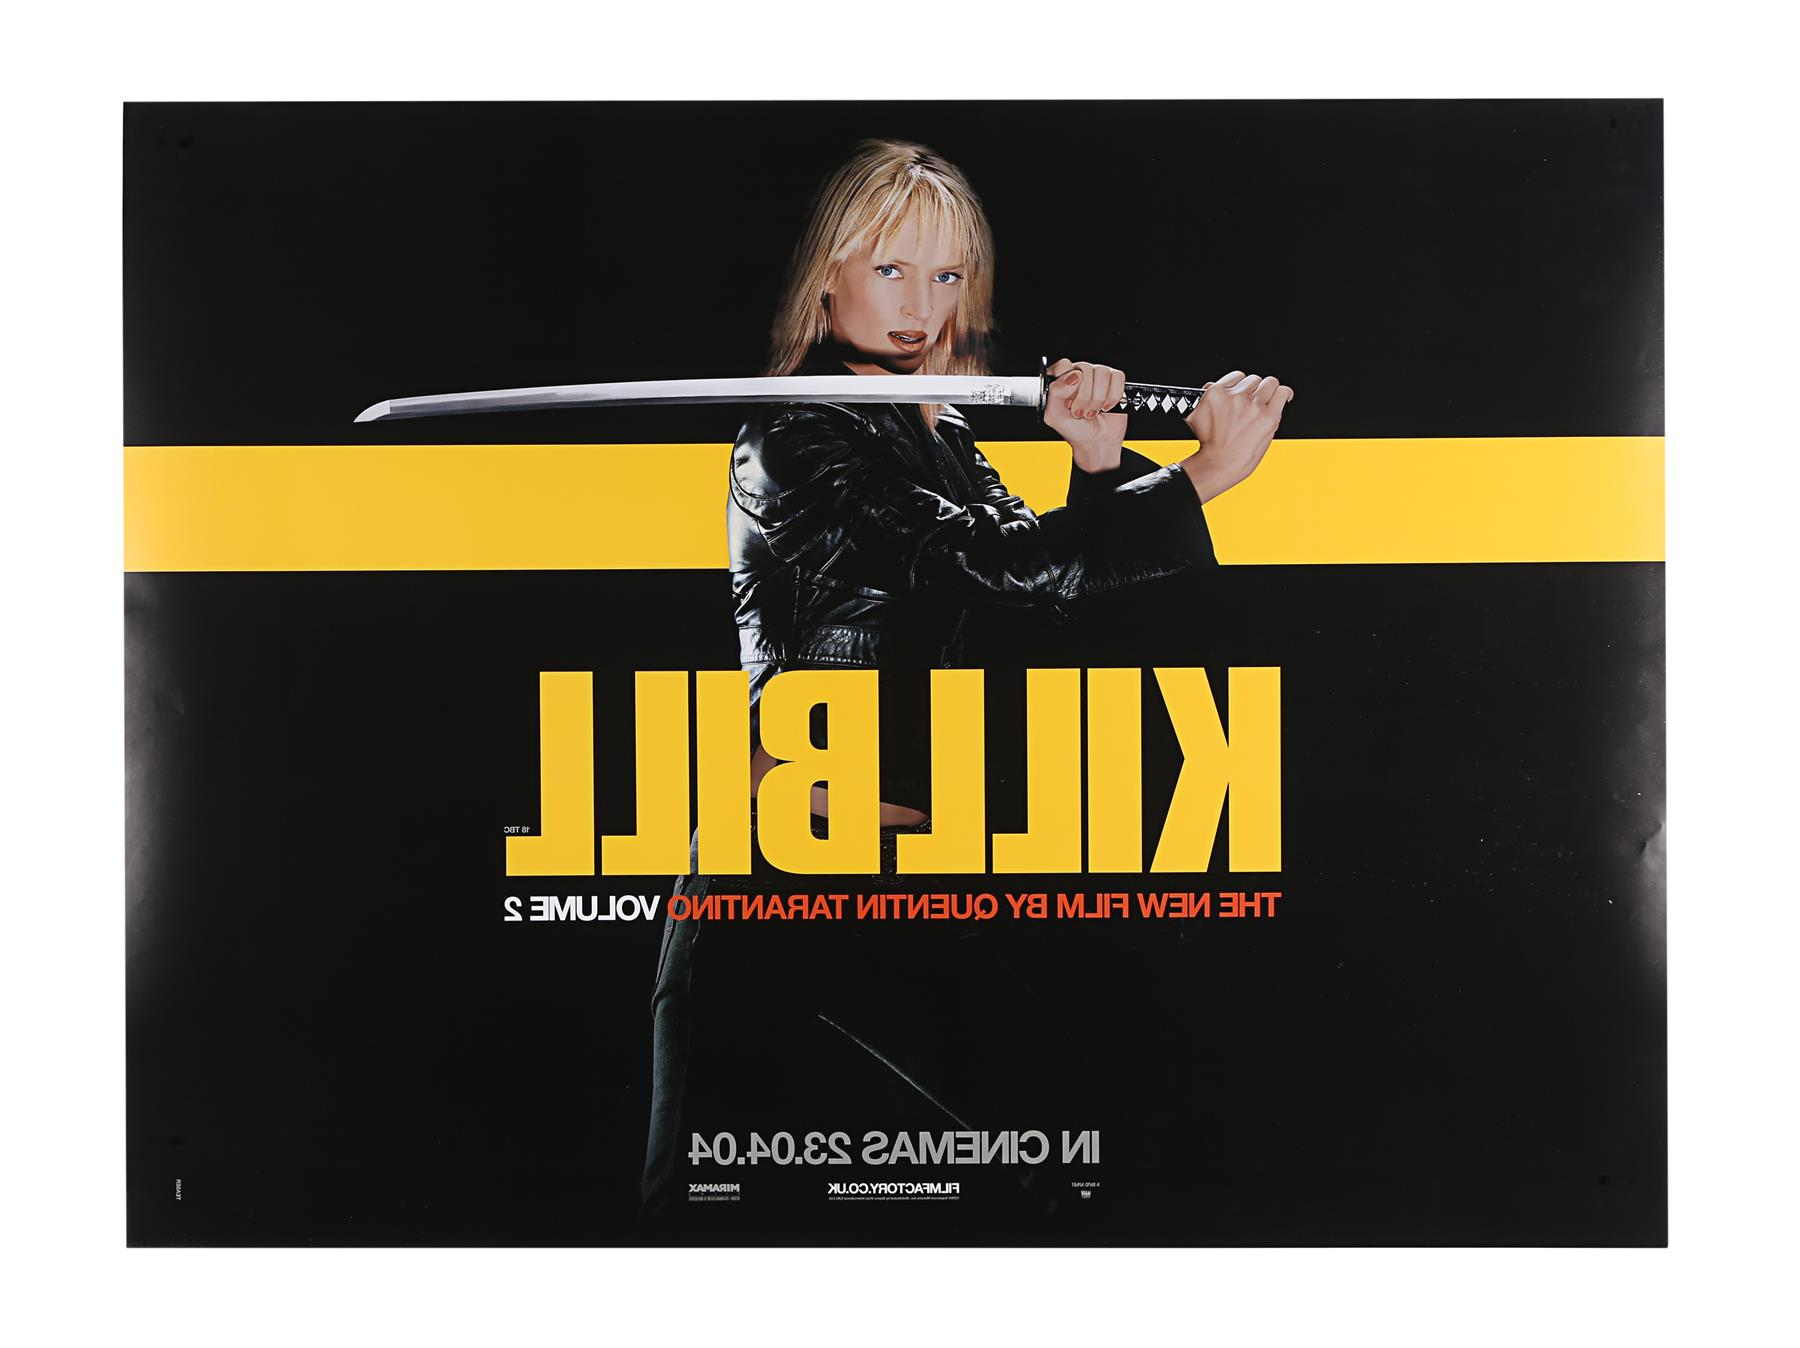 KILL BILL (2003), KILL BILL: VOLUME II (2004) - Two UK Quads, 2003 and 2004 - Image 5 of 9